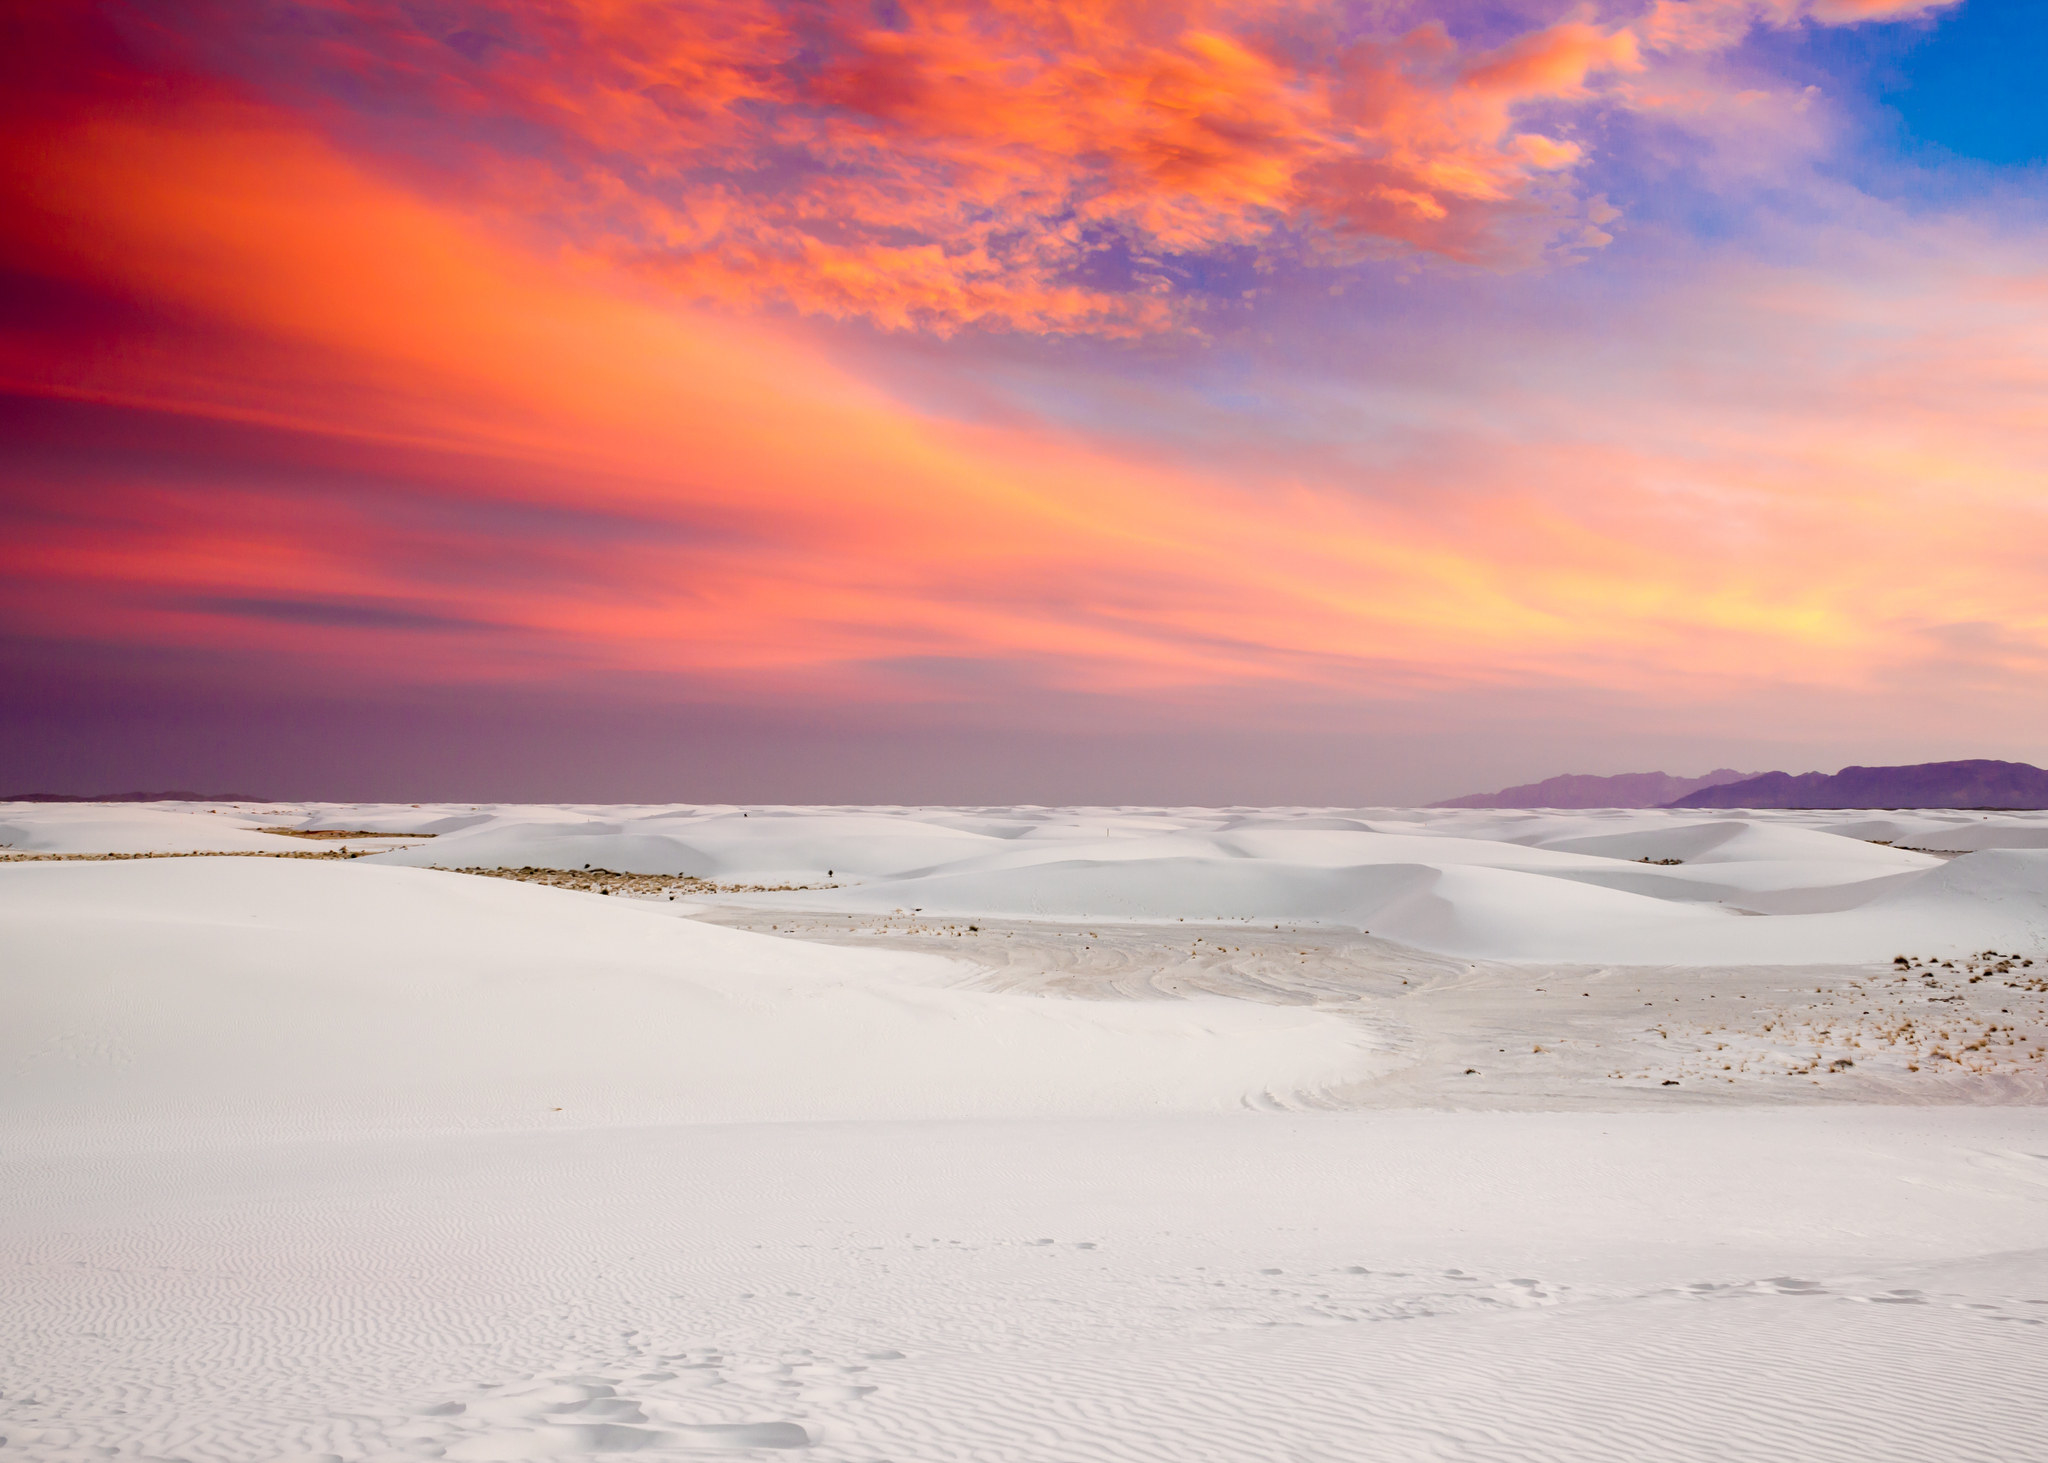 A colorful sunset over white sand desert that stretches the entire frame of the photo